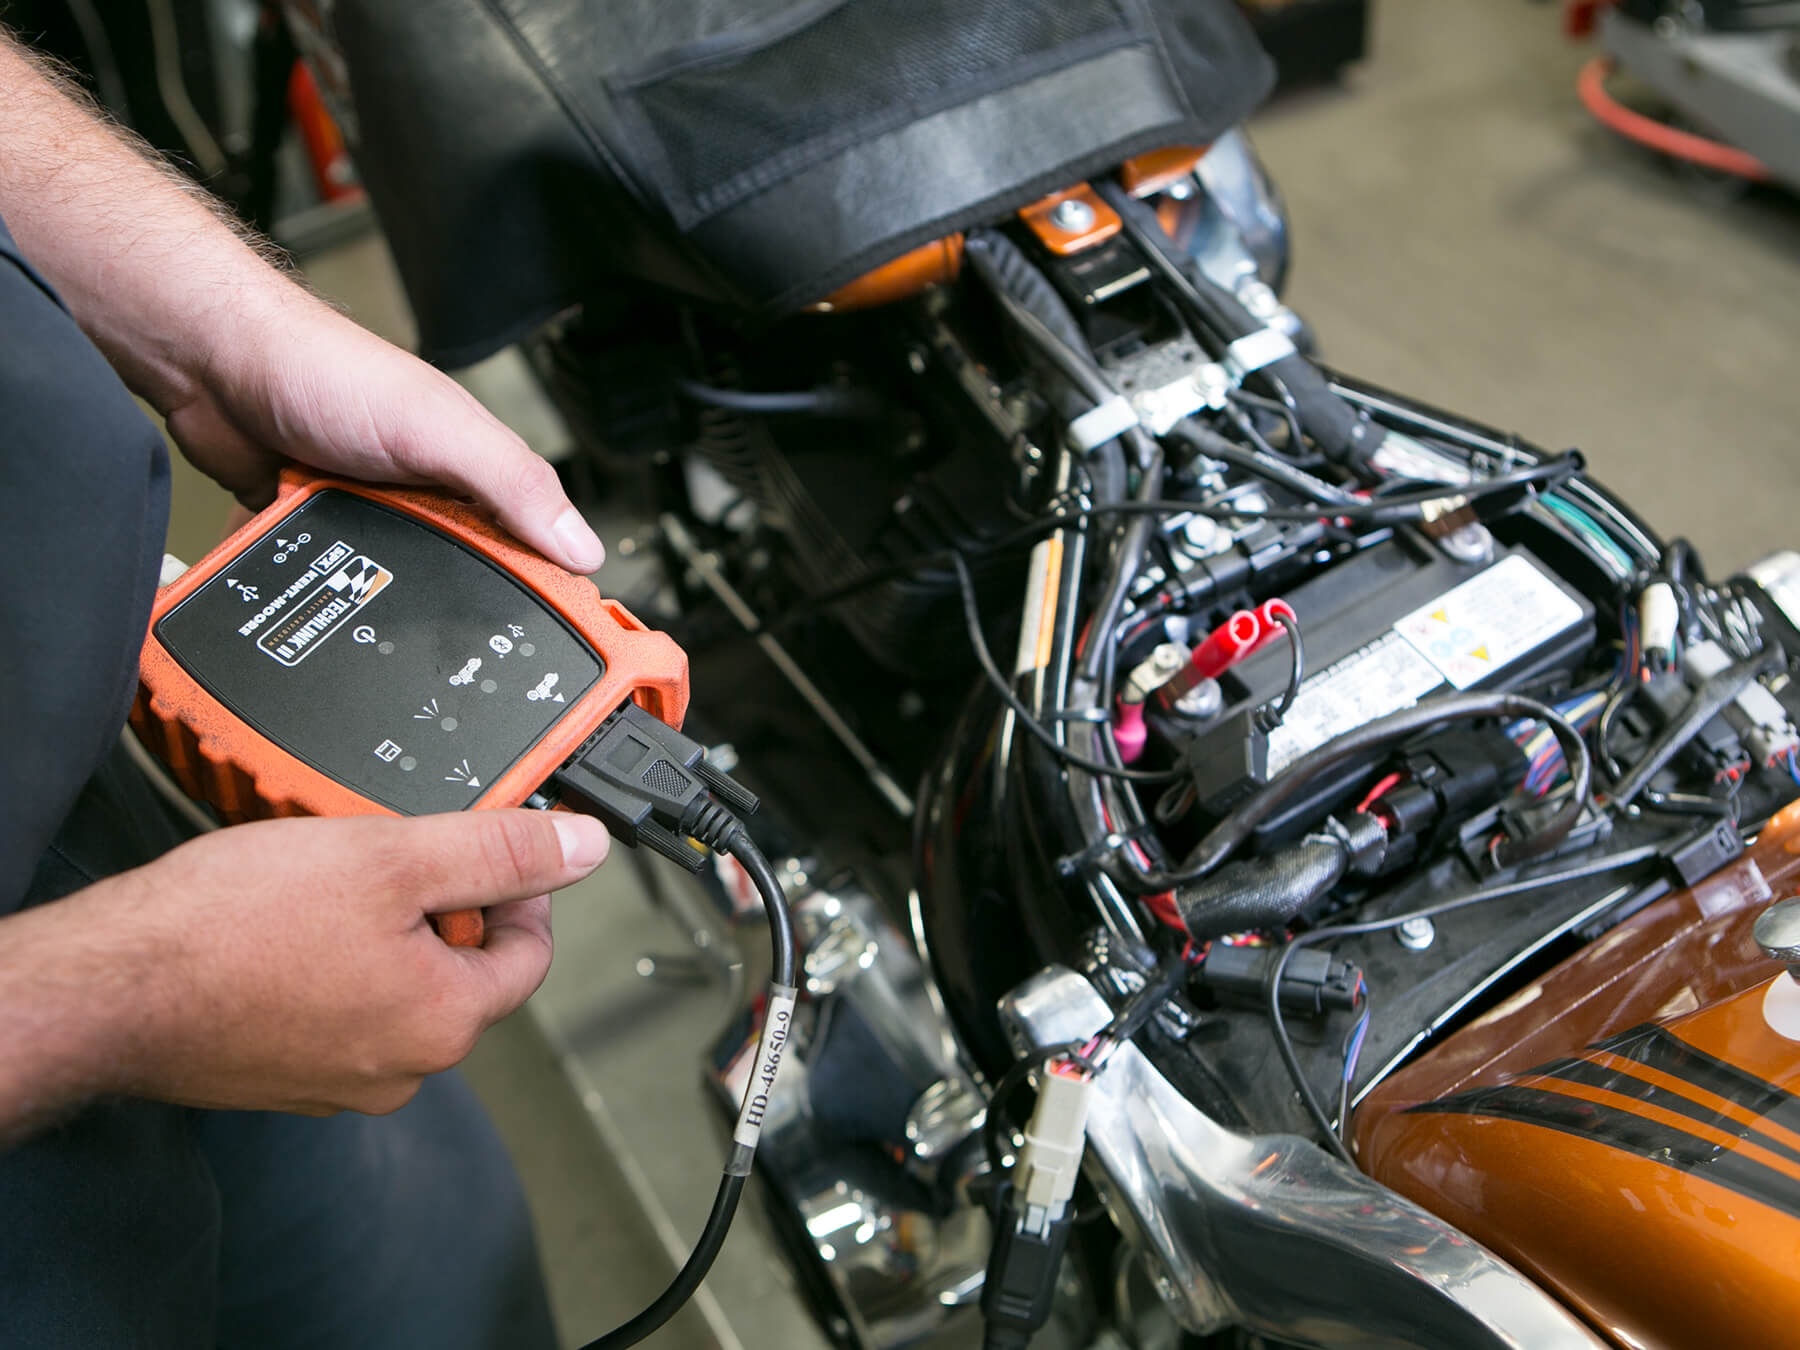 MMI instructor holding an orange and black tool hooked into a motorcycle